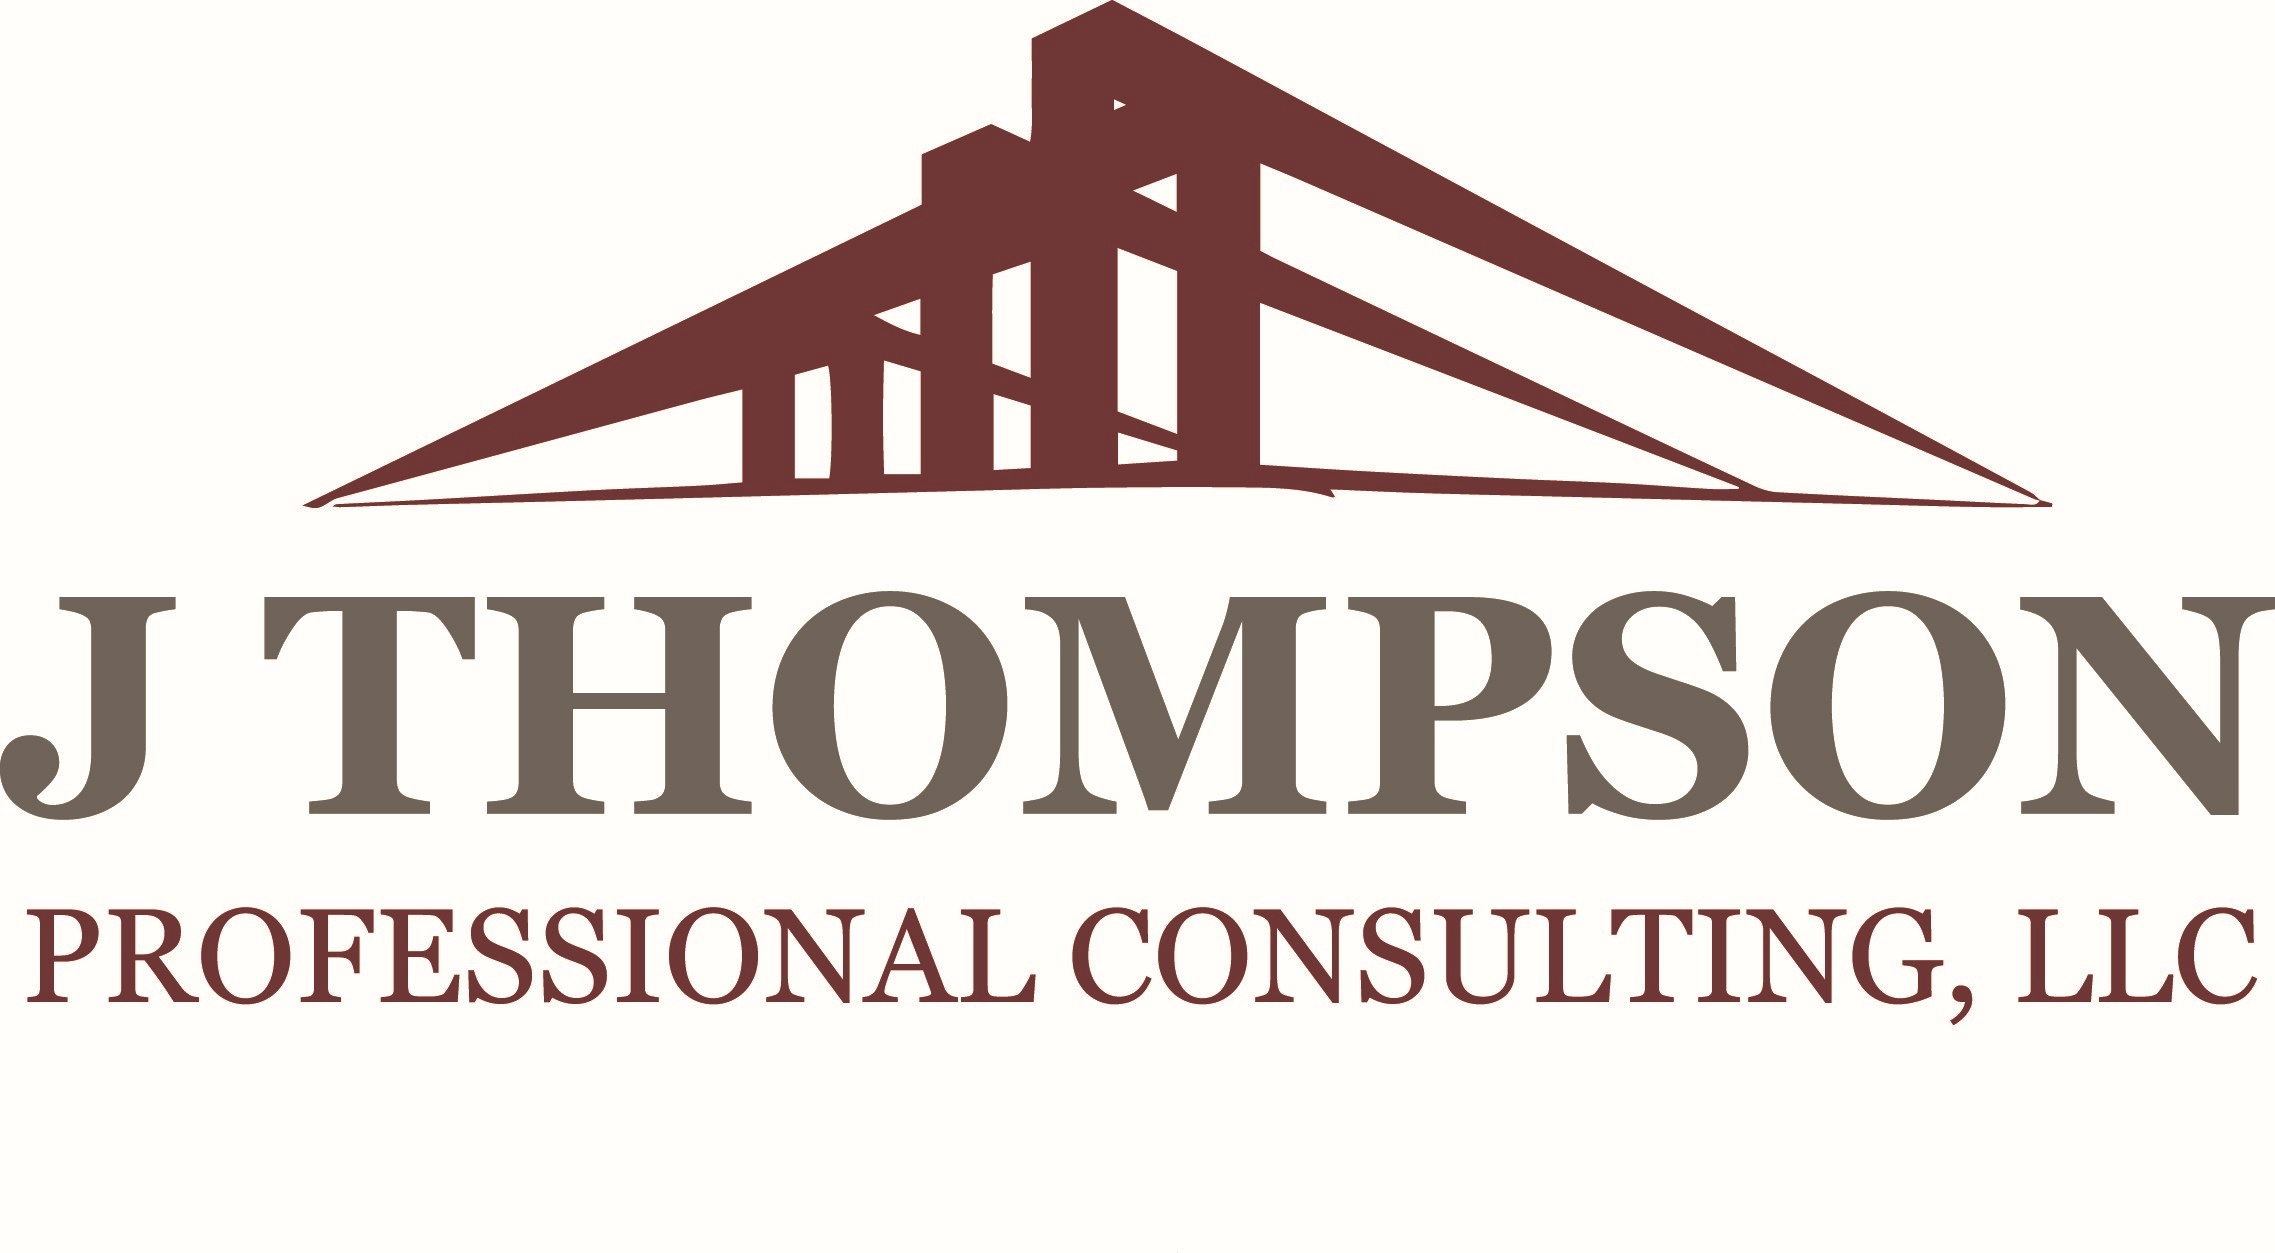 J Thompson Professional Consulting